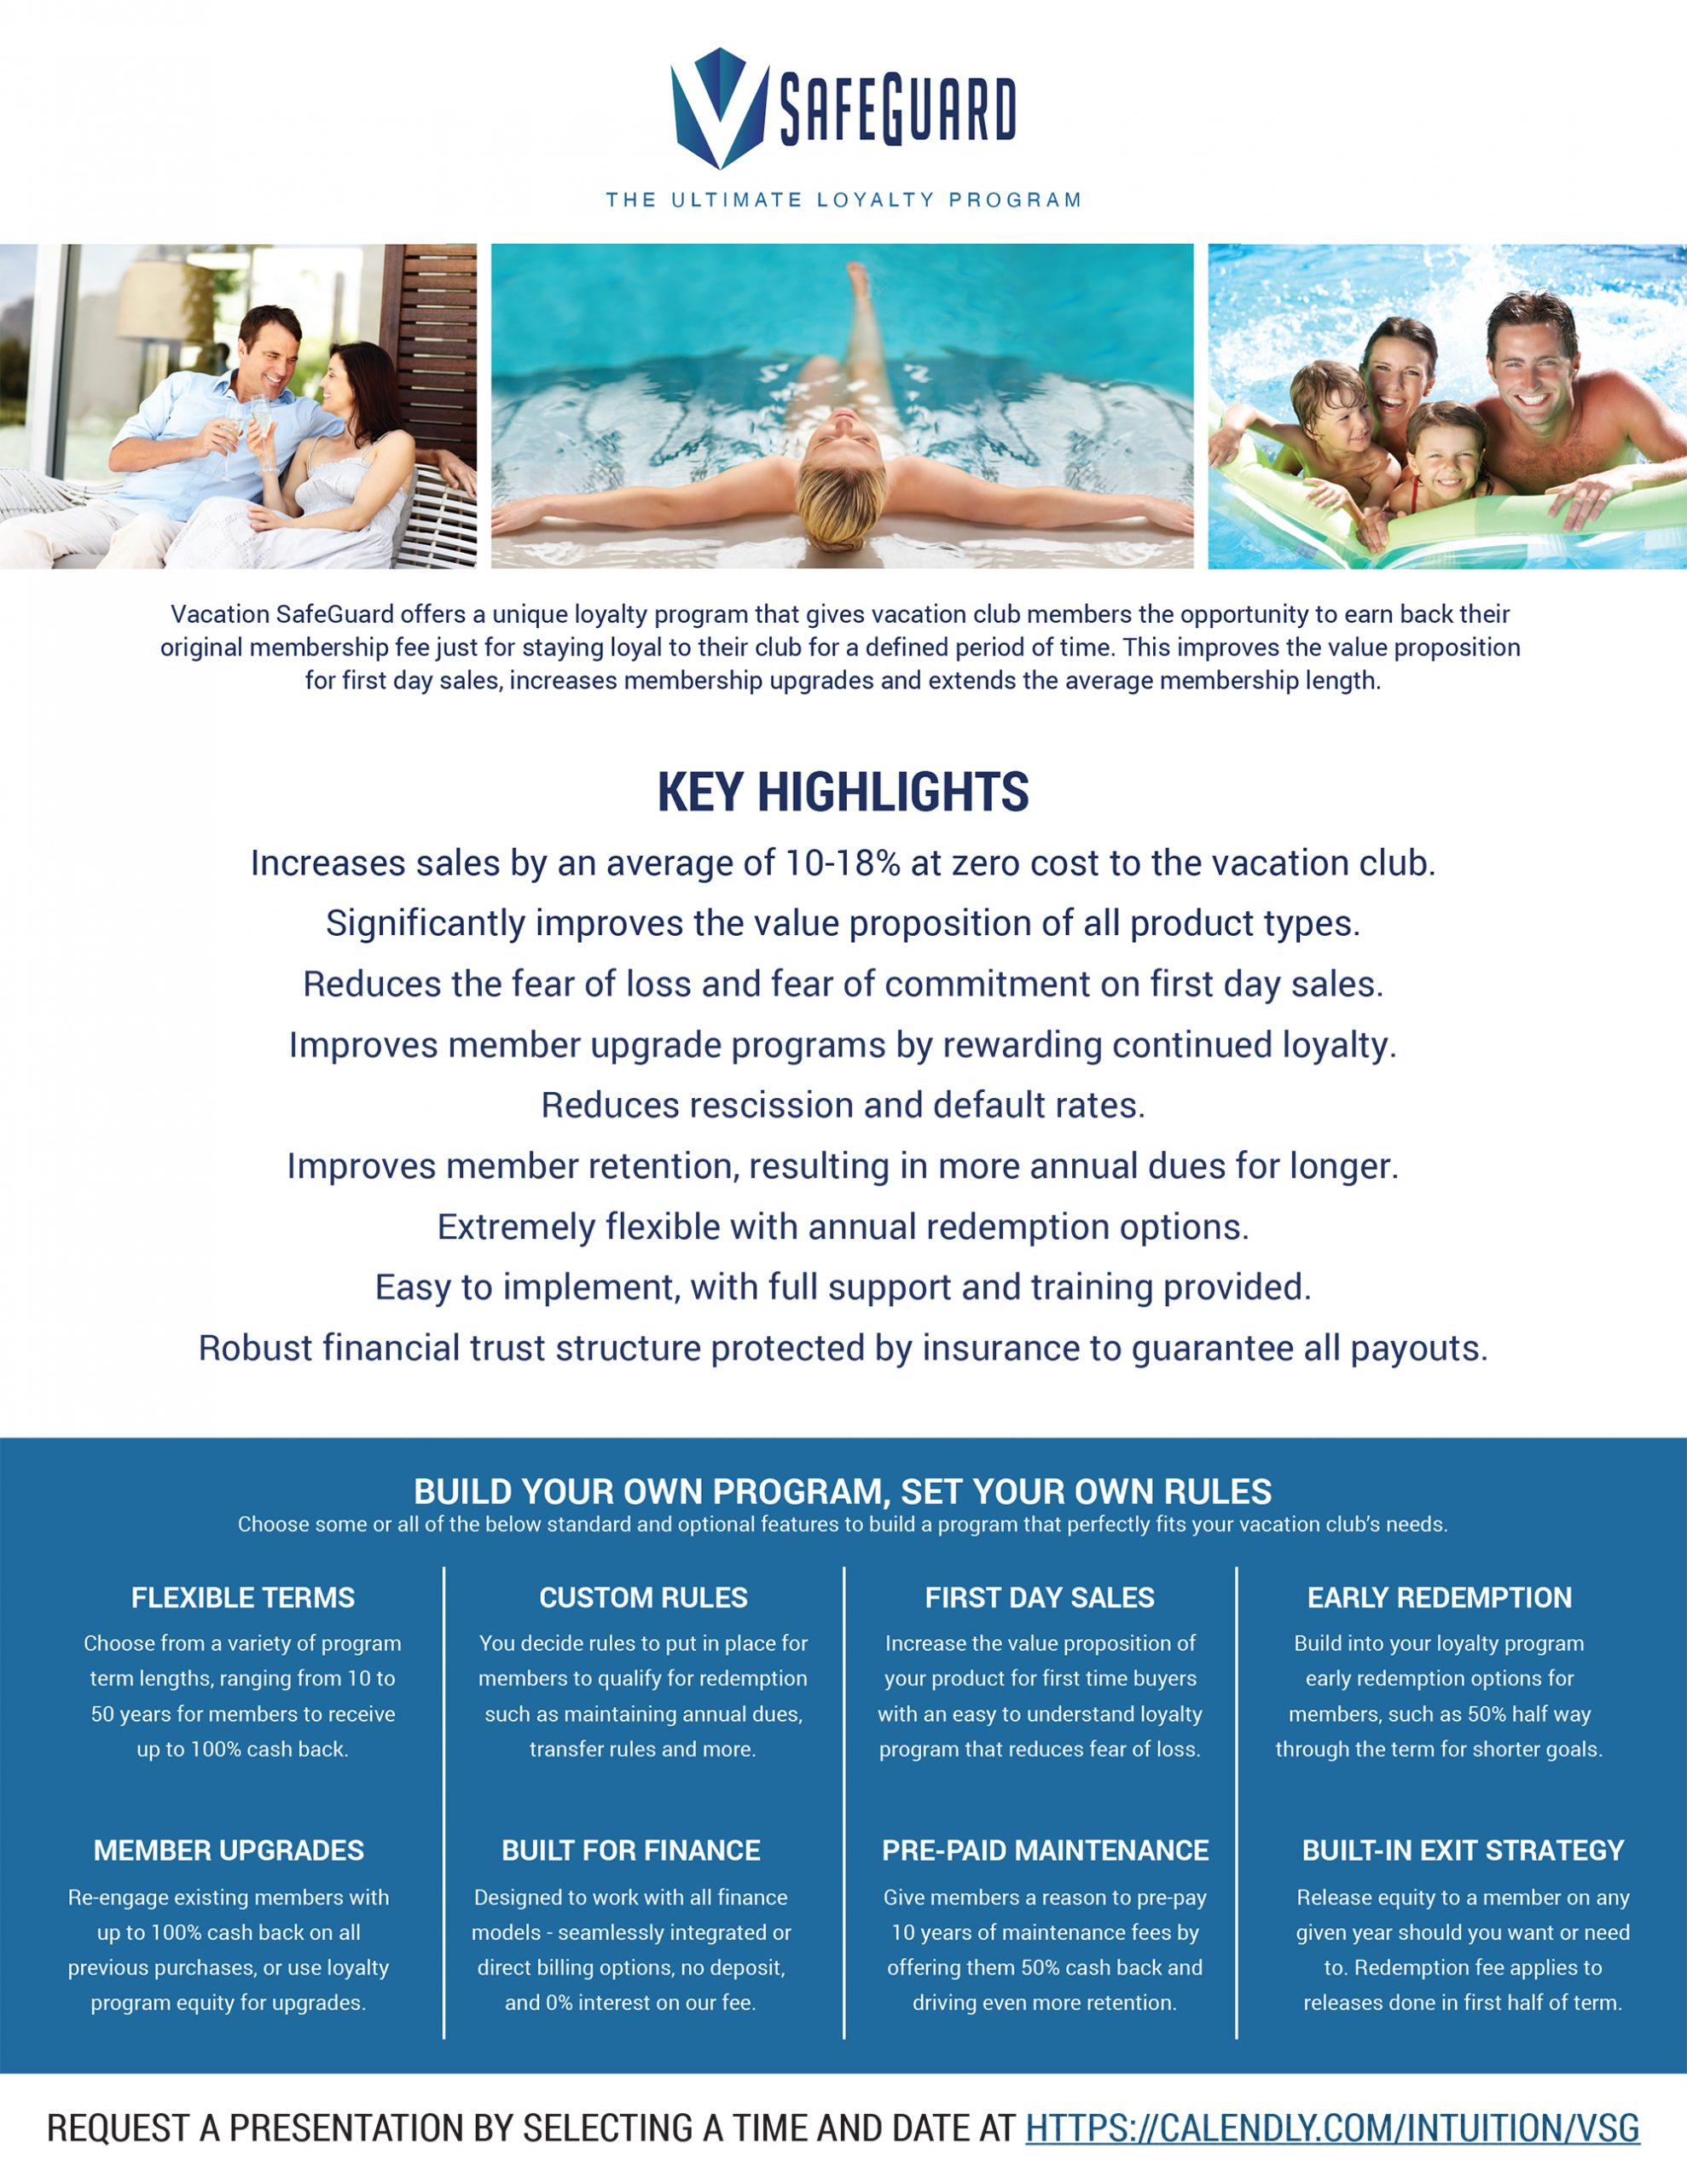 Vacation SafeGuard Highlights